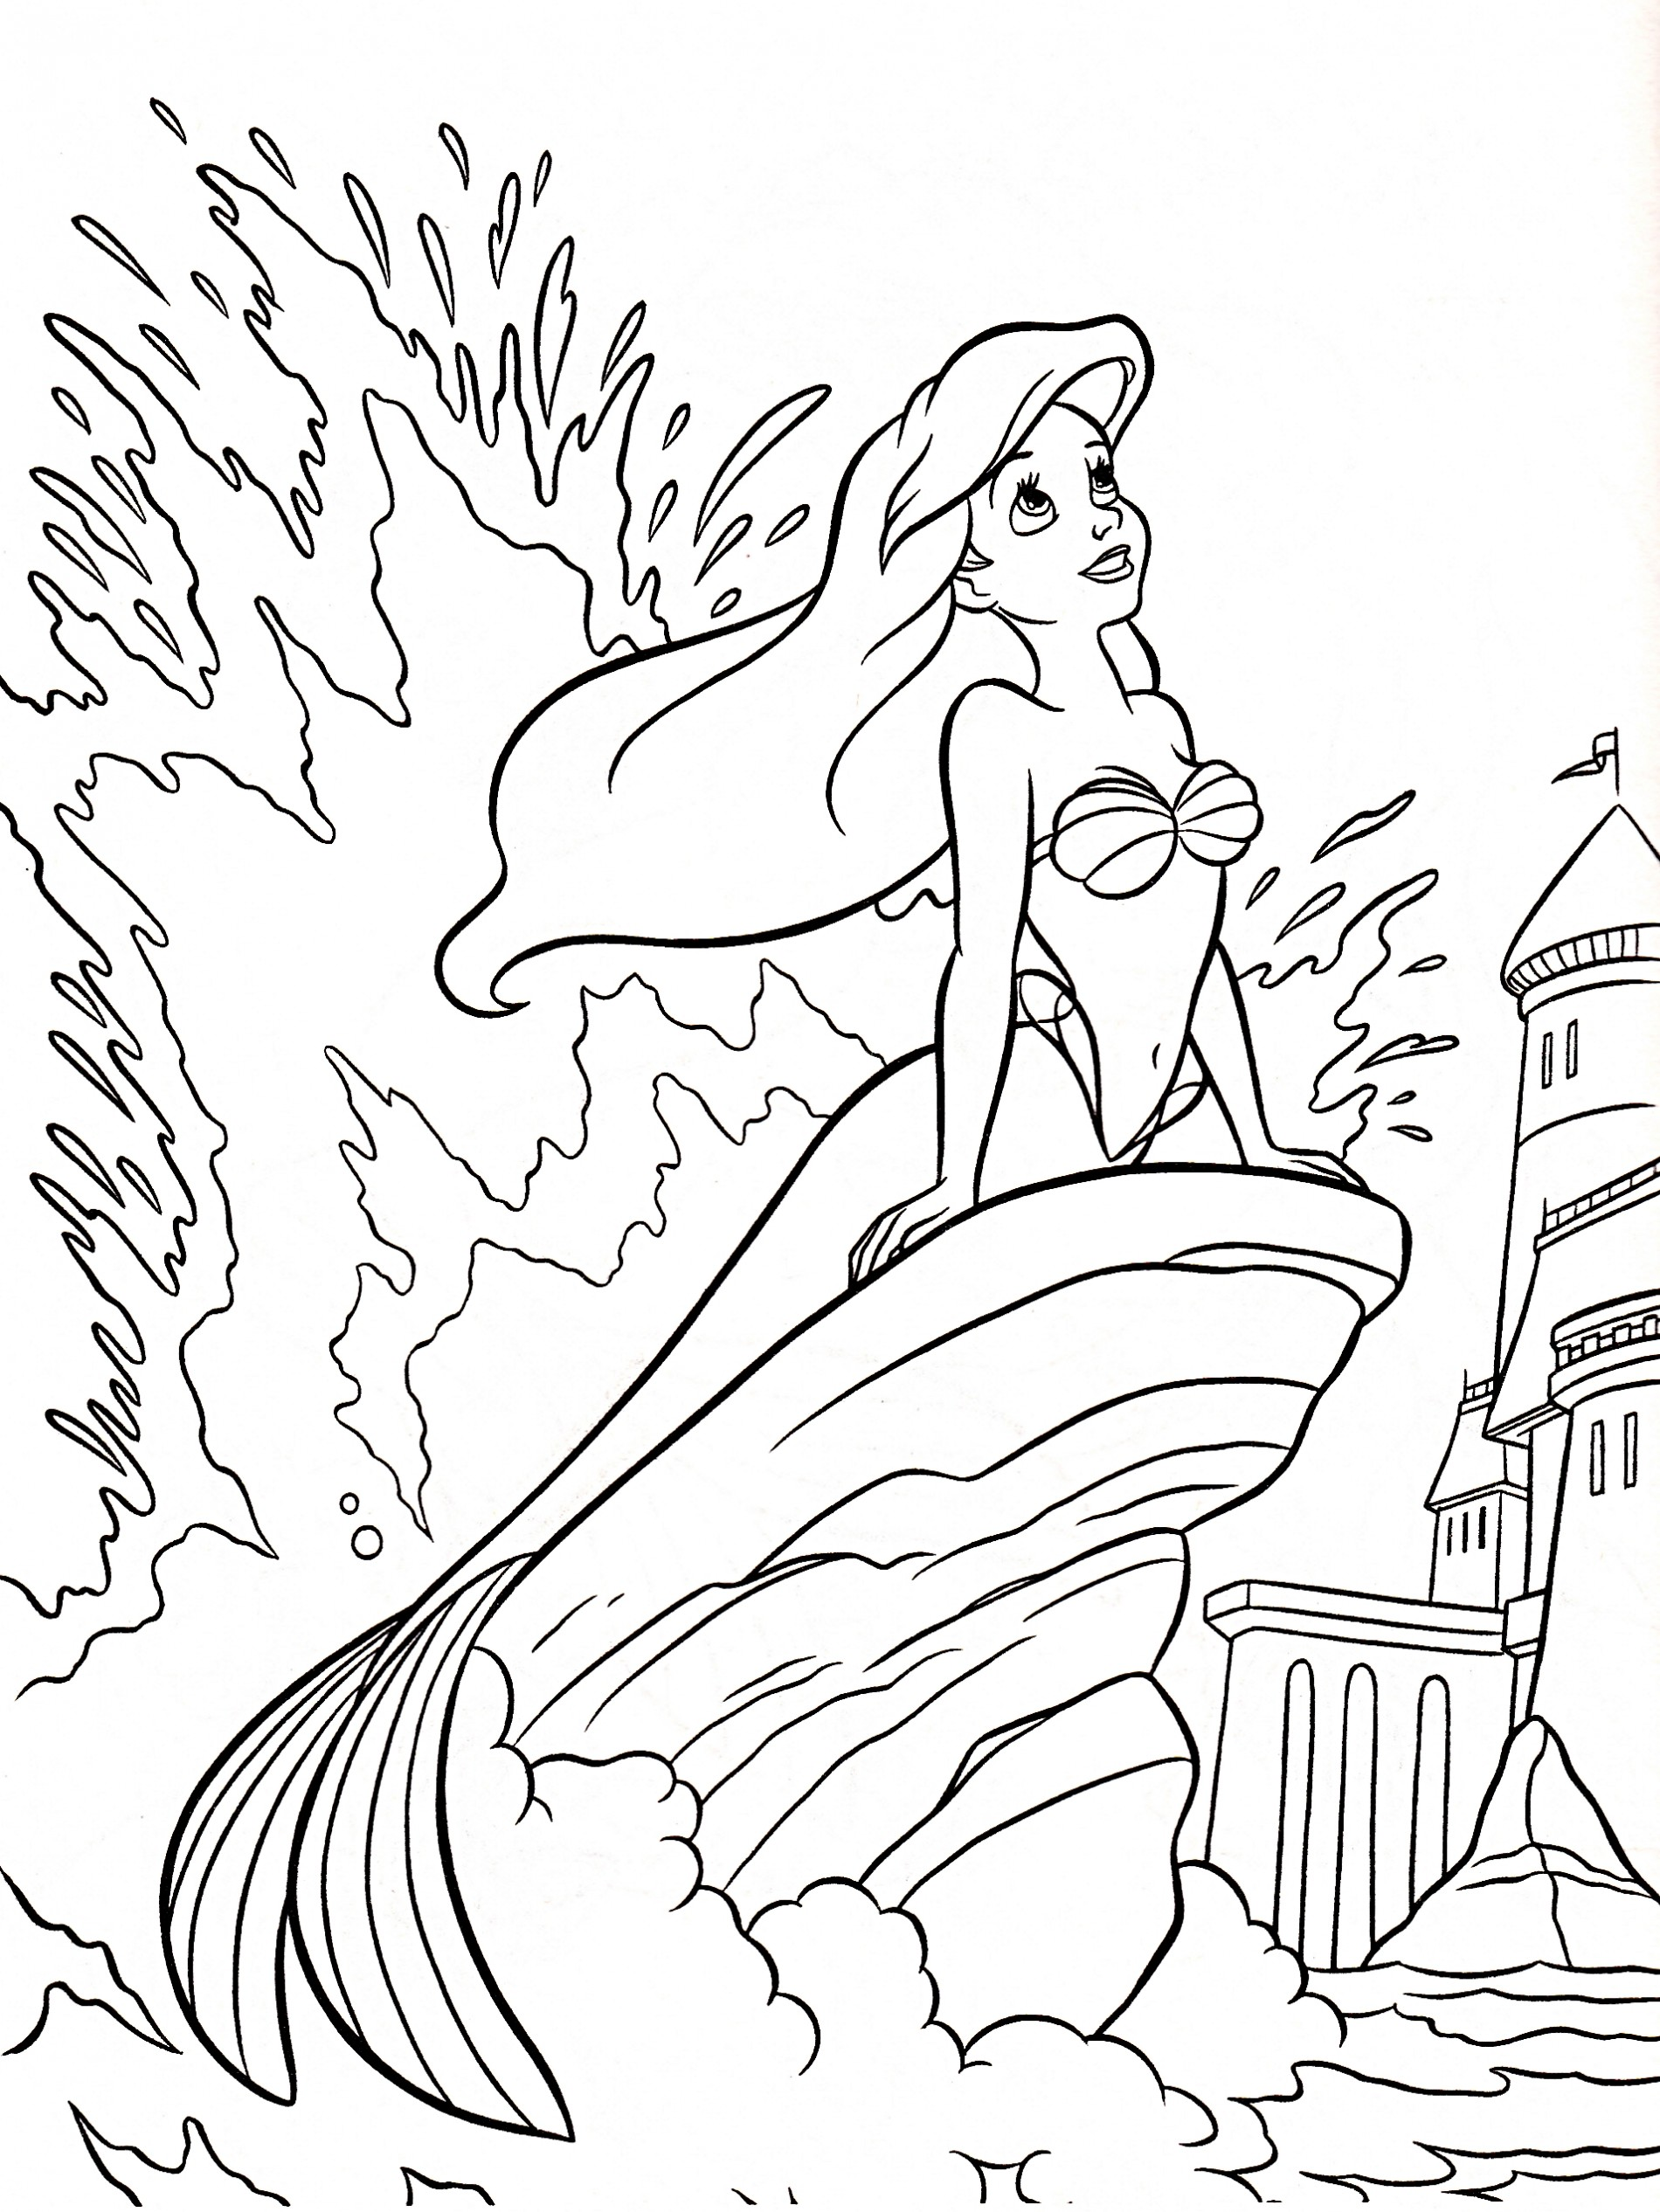 The Little Mermaid Coloring Pages To Download And Print